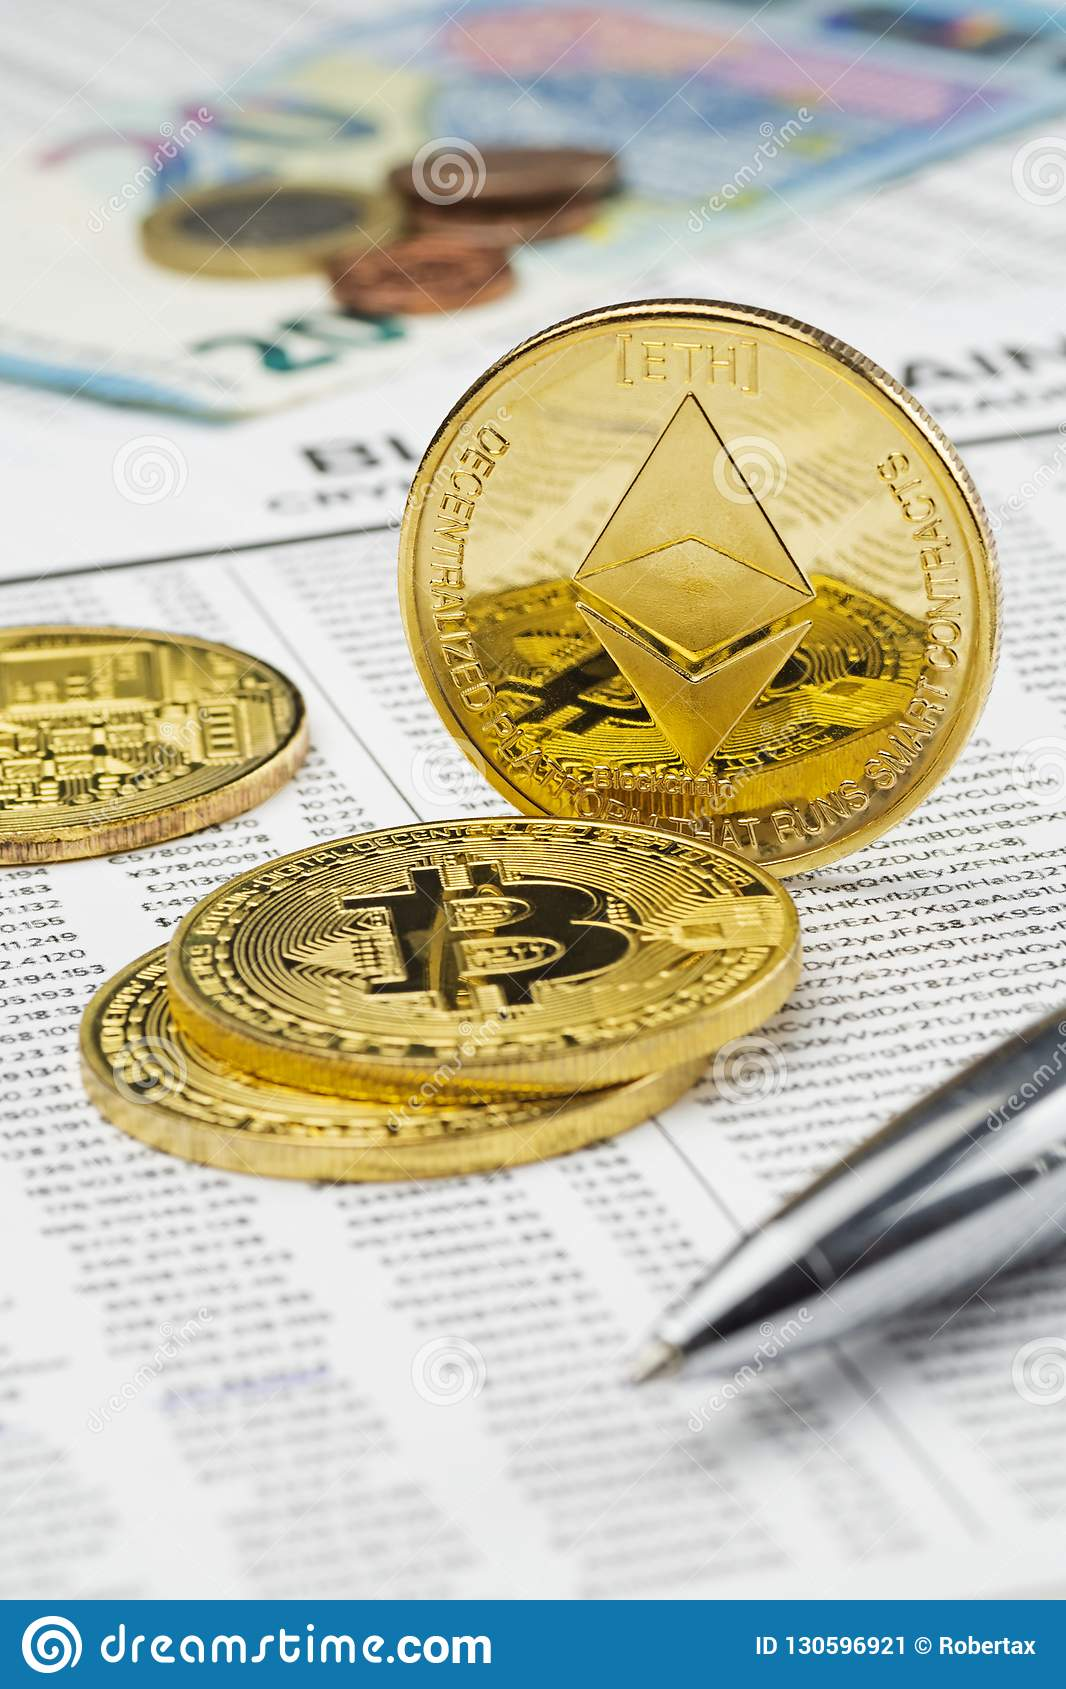 Physical Bitcoin And Ethereum Coins On Mockup Blockchain